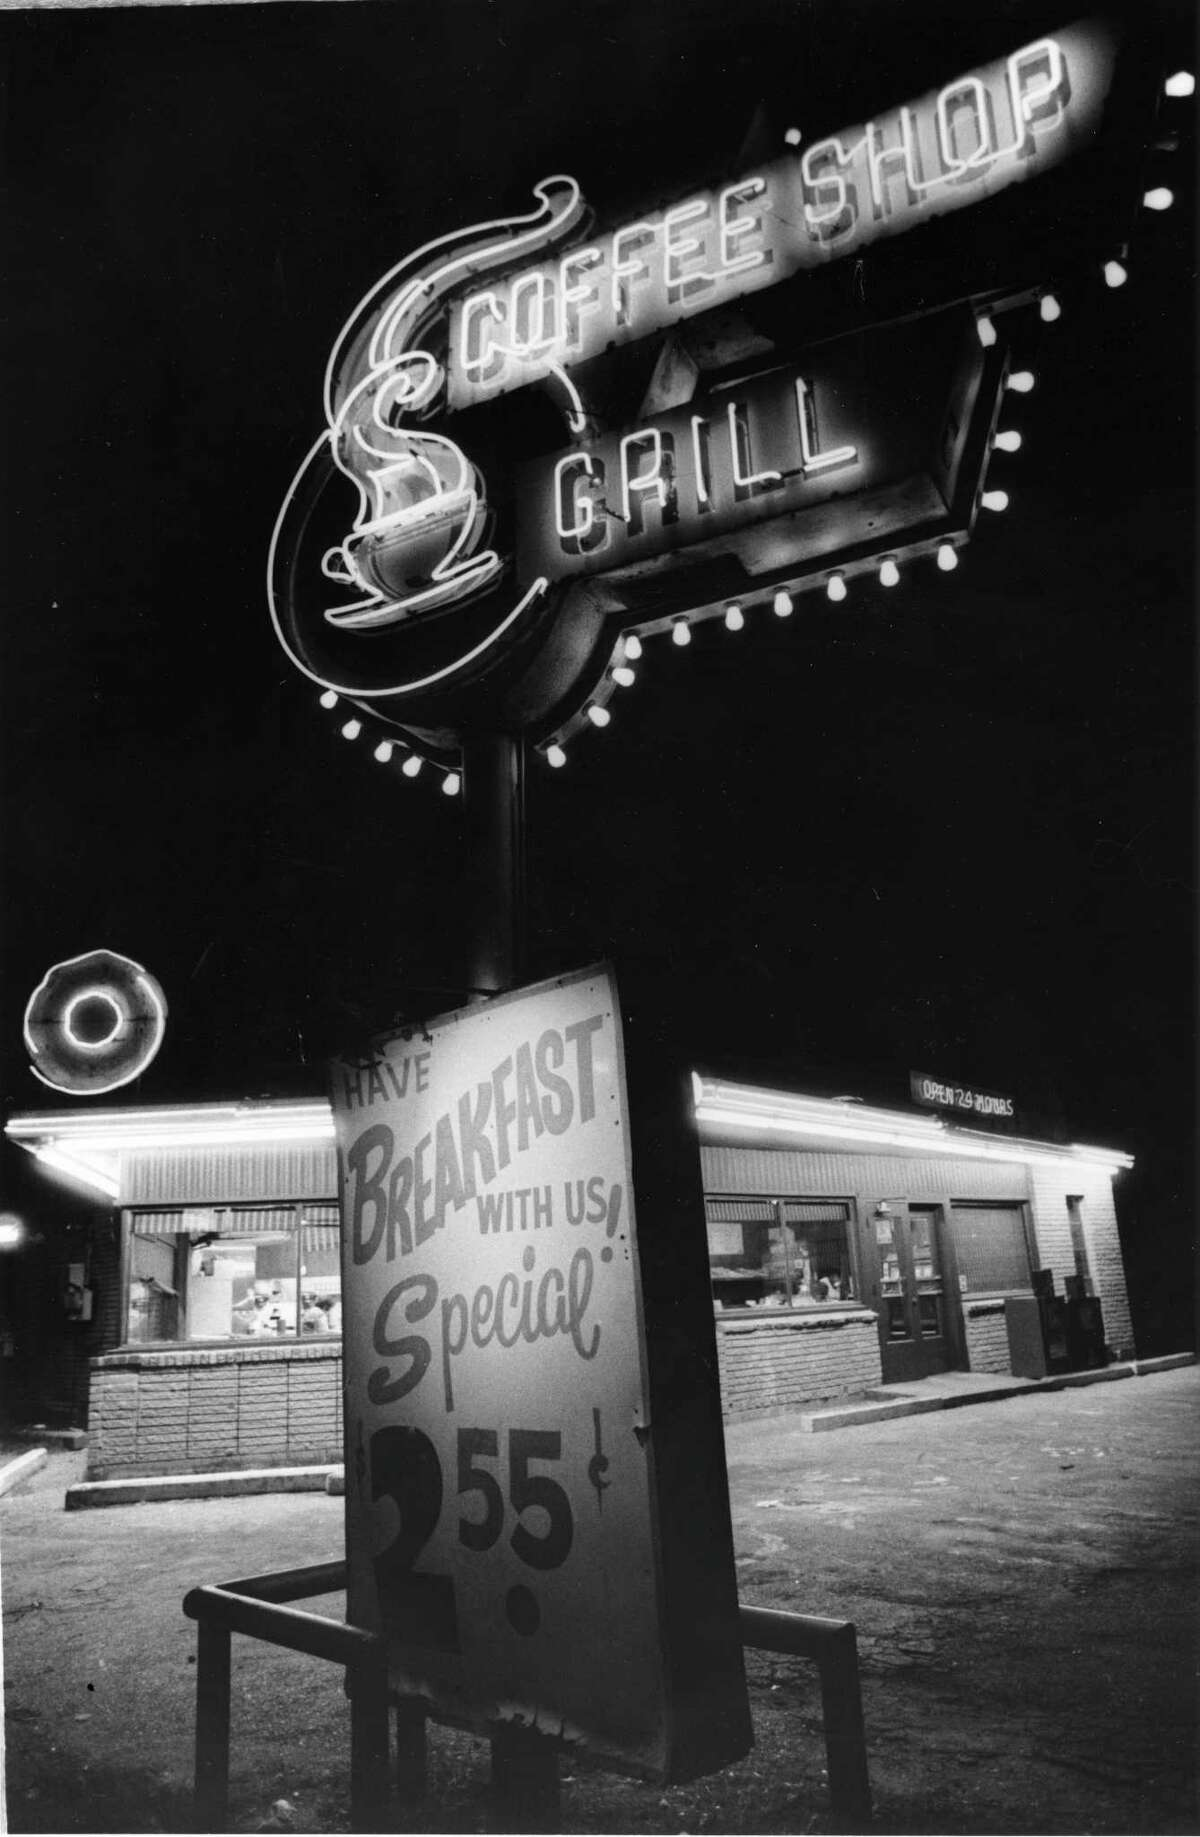 11/10/1982 - Shipley's Do-nut and Grill on West Gray is open 24 hours.